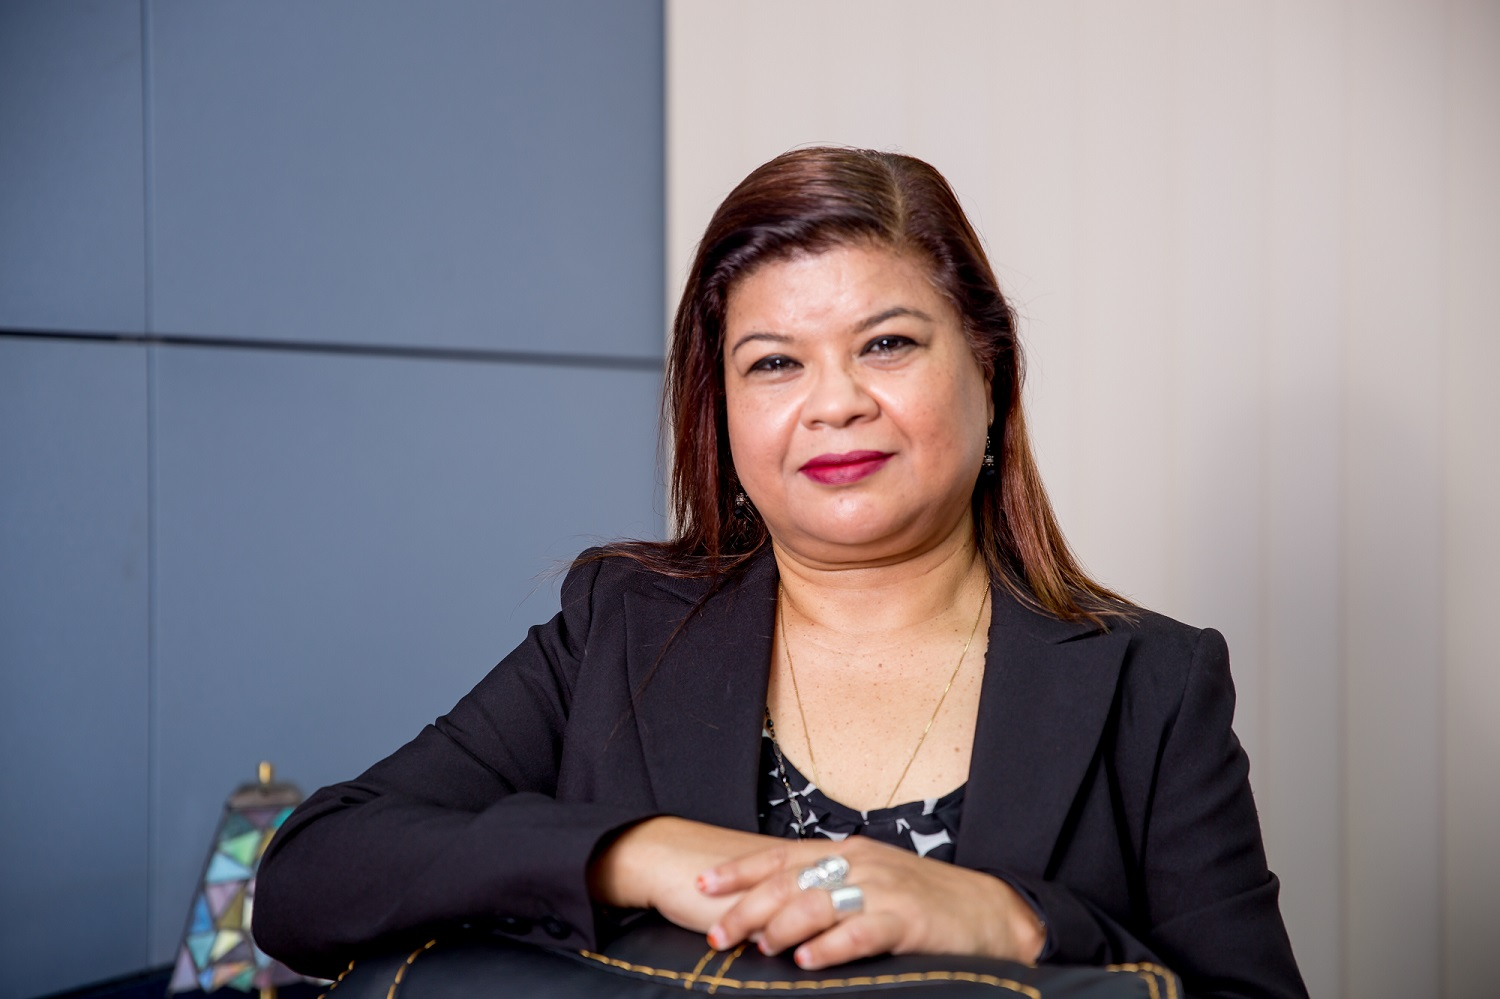 Nazrah Ramdin, Managing Partner - BDO Associates in Seychelles